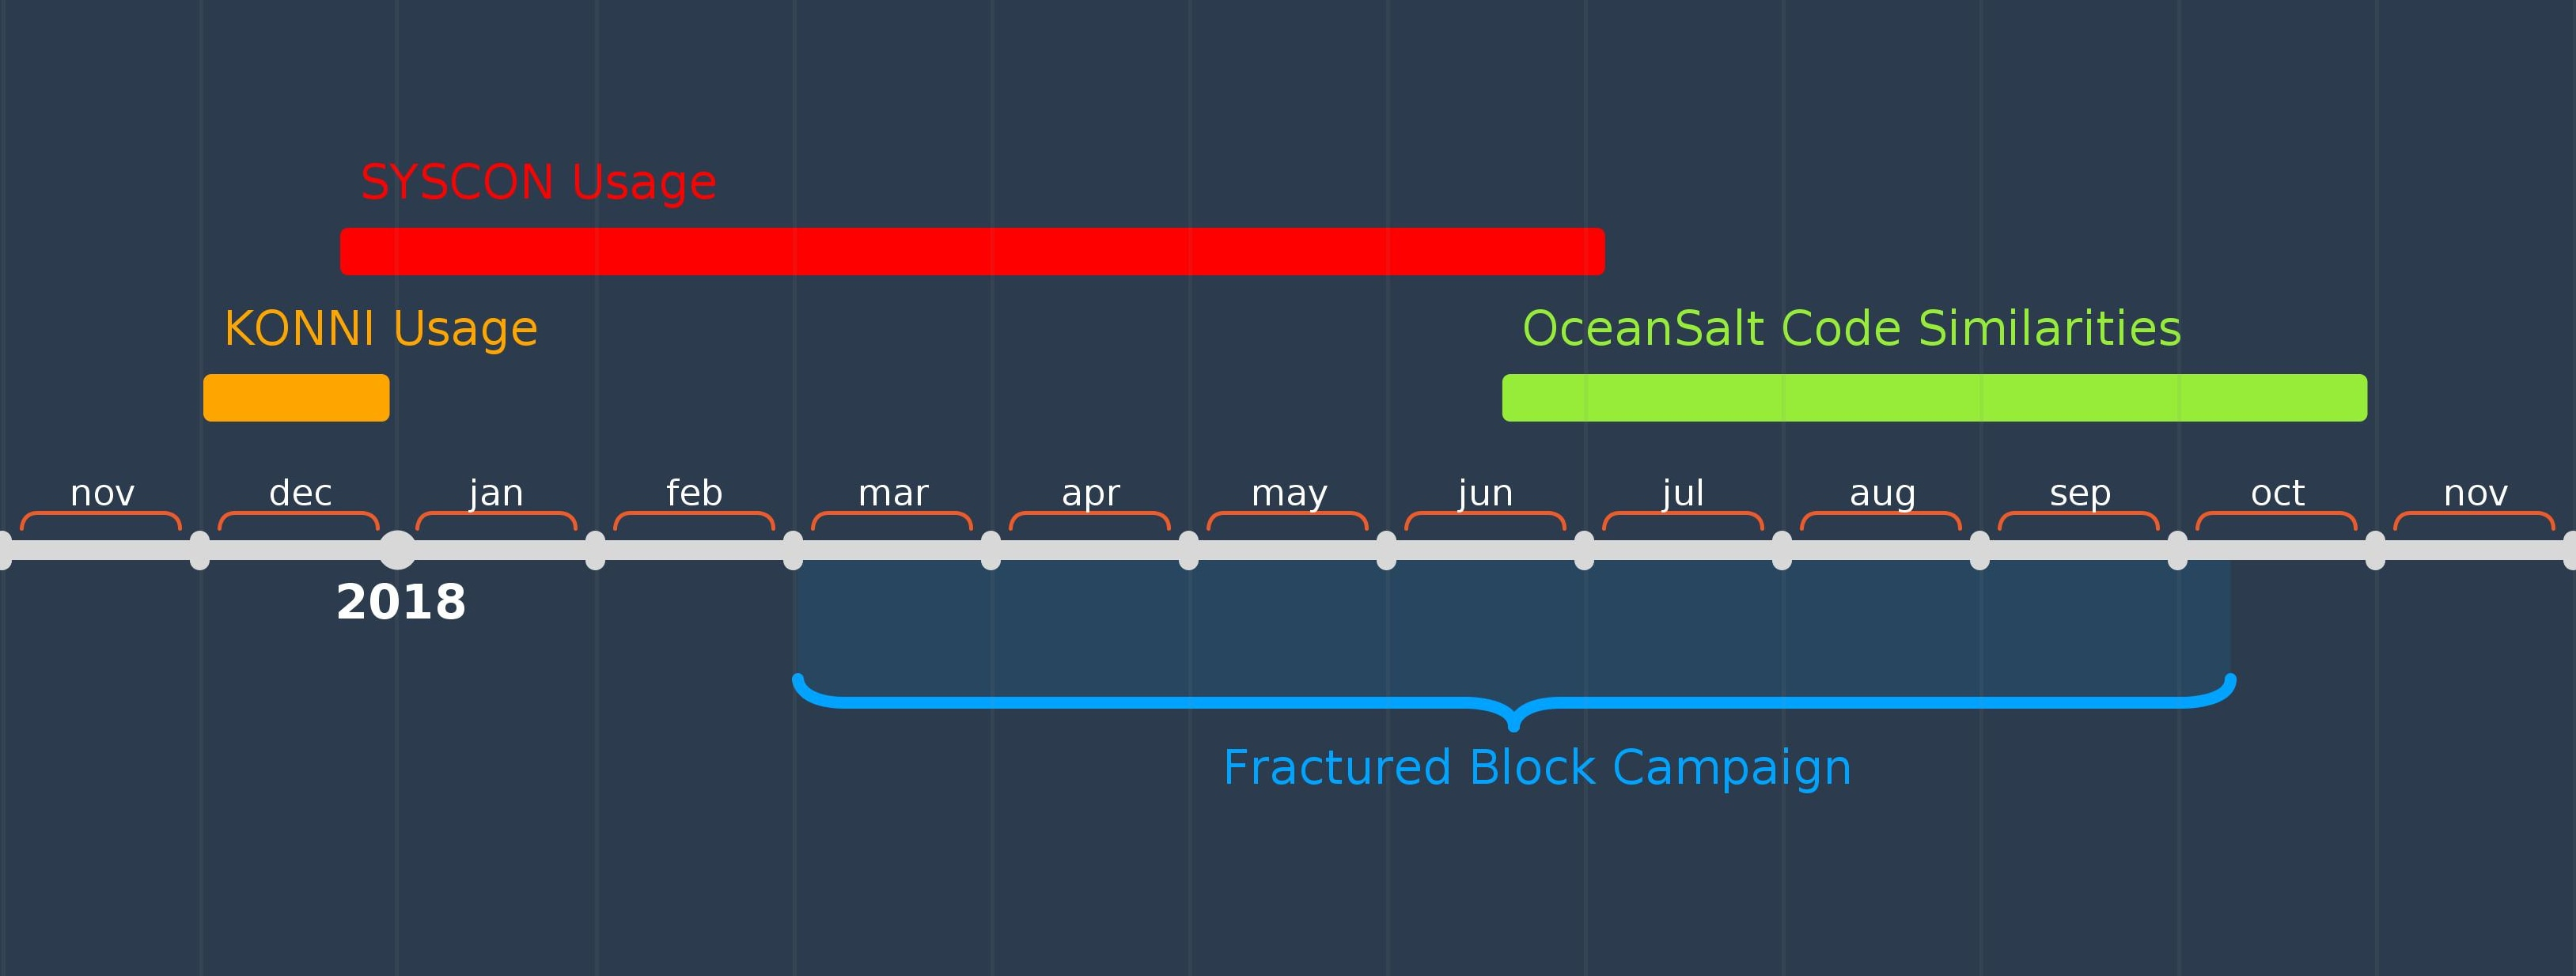 The Fractured Block Campaign: CARROTBAT Used to Deliver Malware